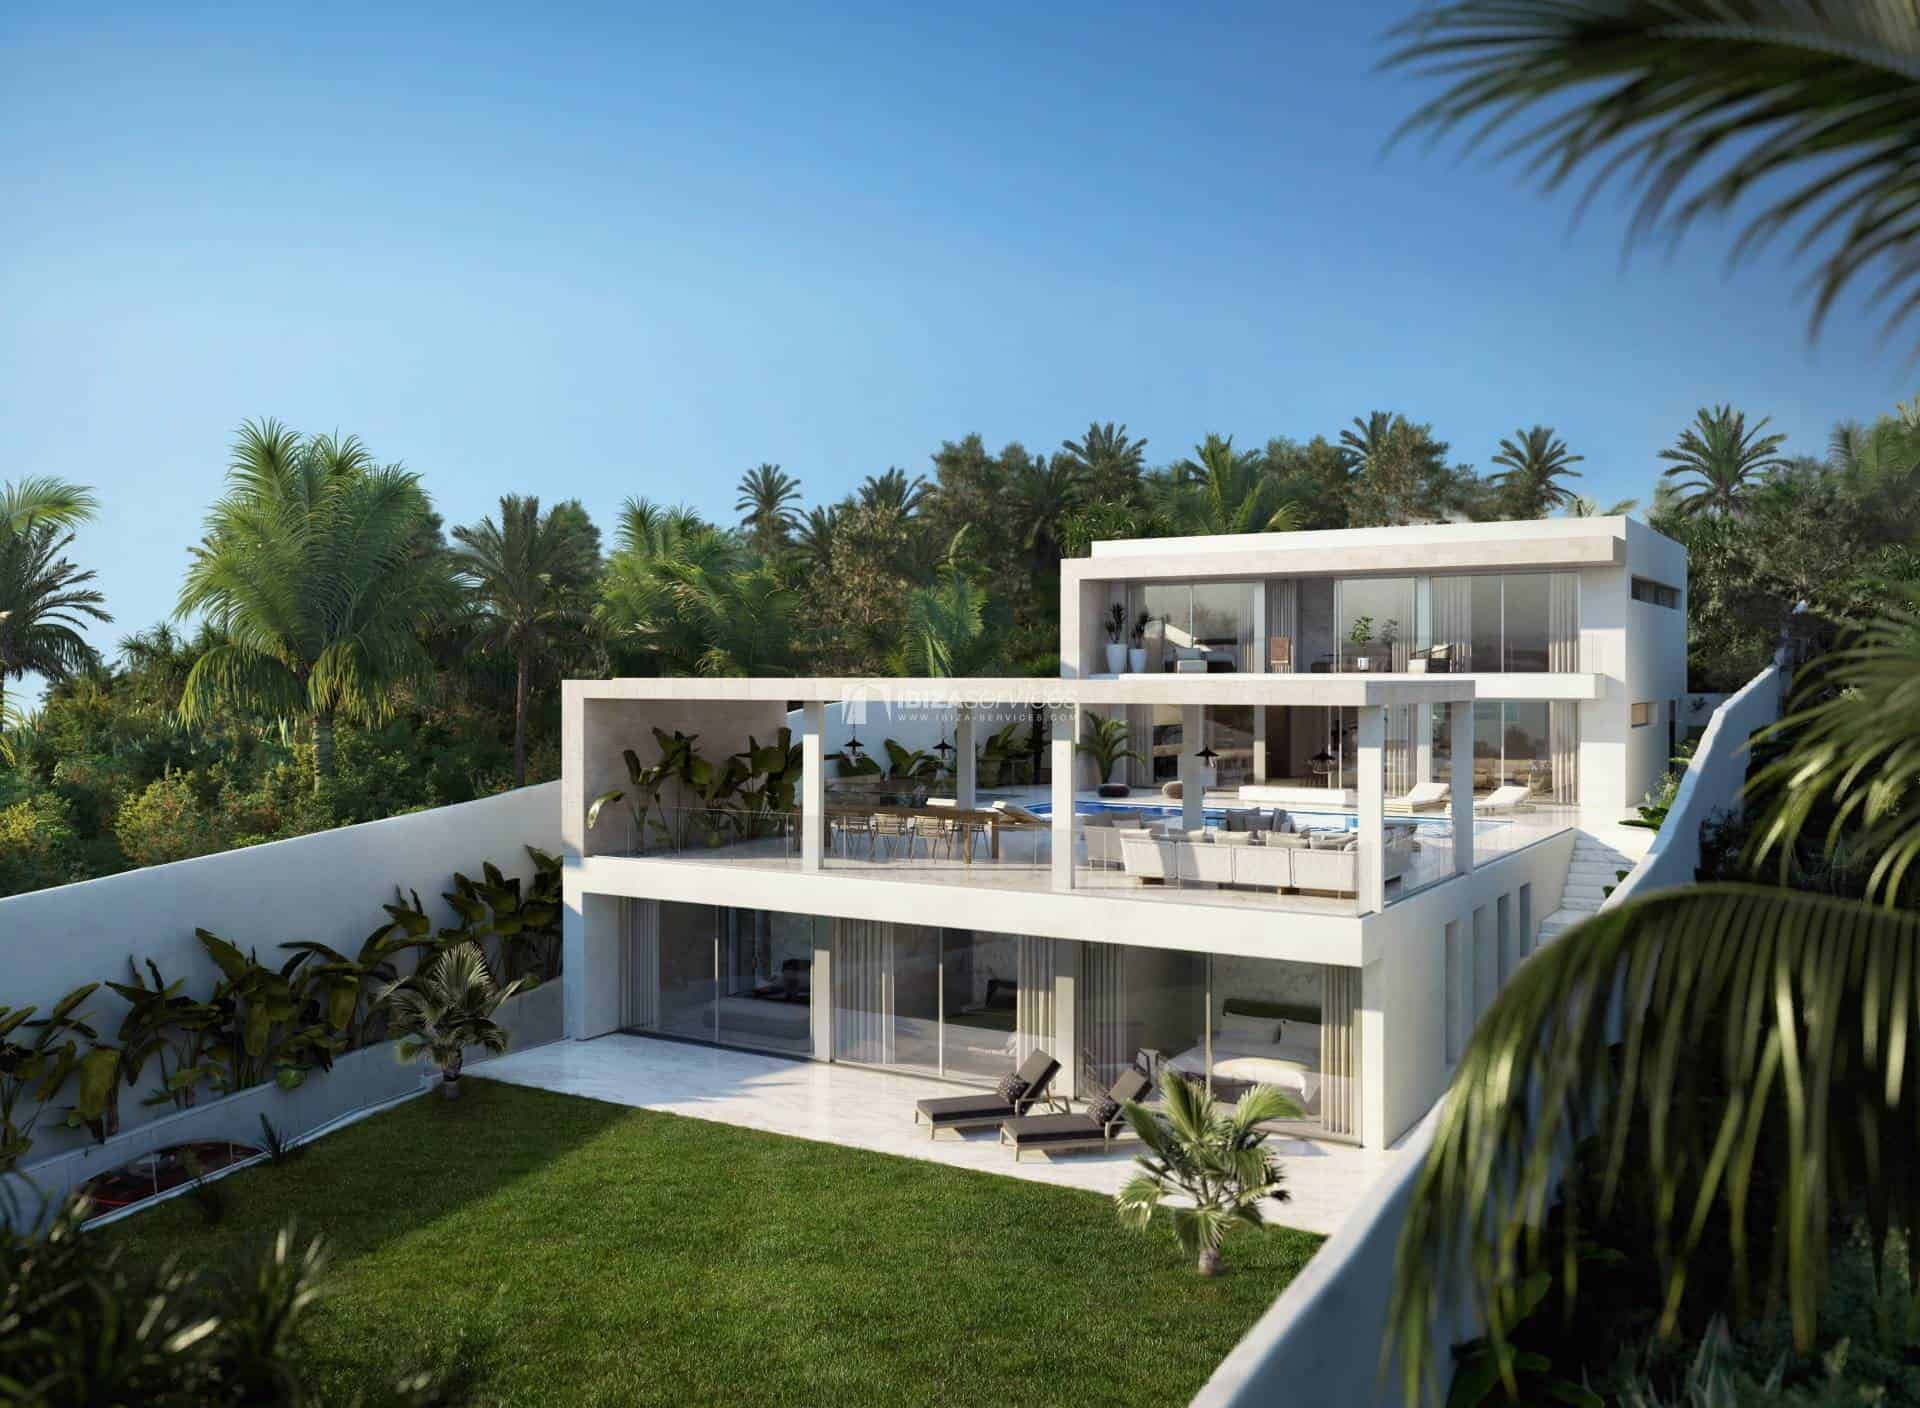 For Sale Cap Martinet Talamanca urban land with project perspectiva 5